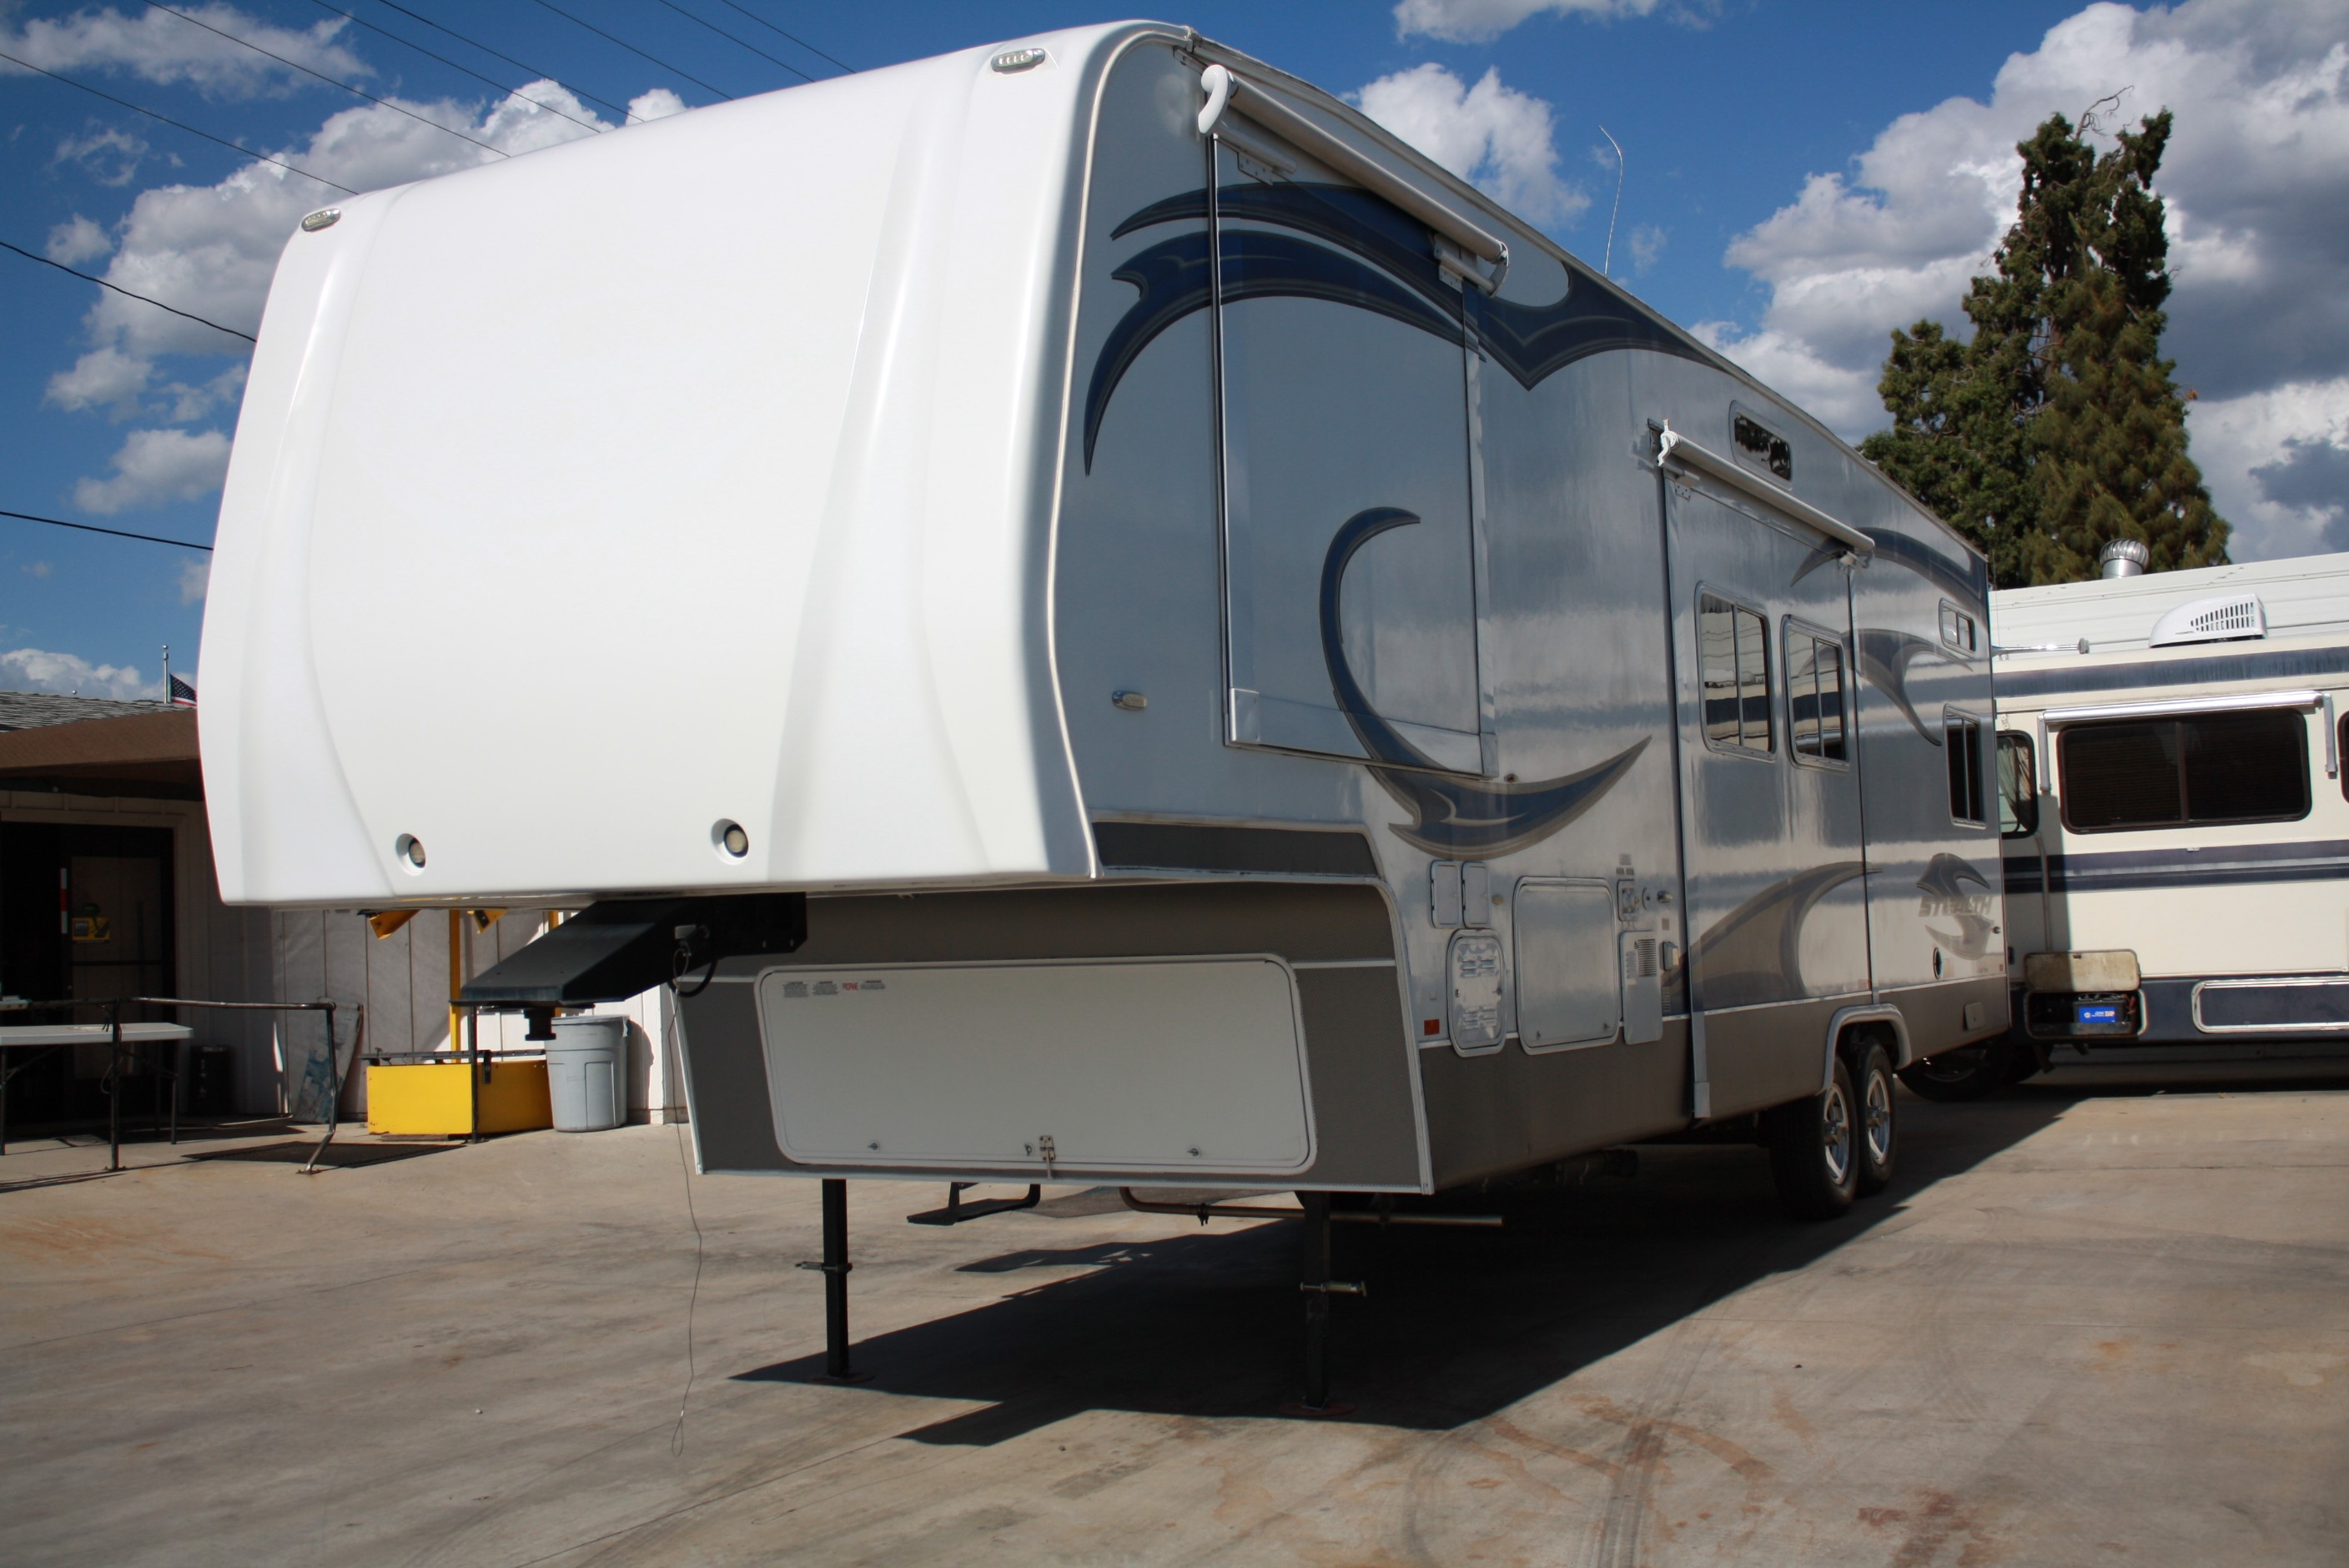 Used, 2011, Forest River, Stealth Wide Body Lite Series RG 3210, Toy Haulers